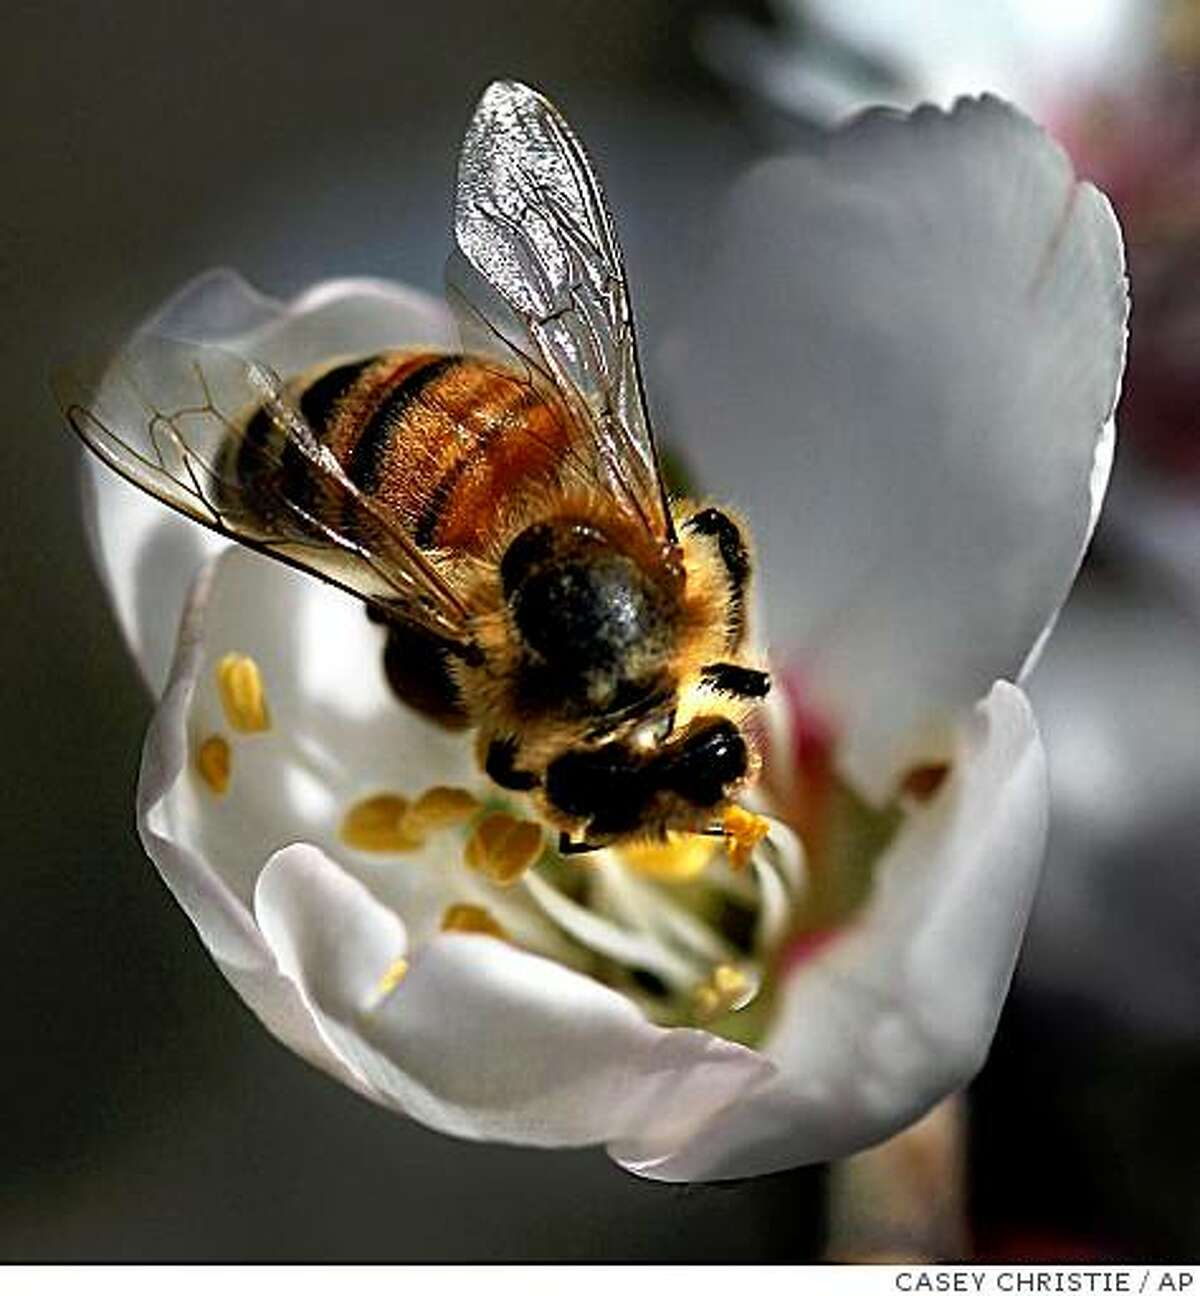 A honey bee lands on an almond blossom Friday, Feb.10, 2006, northwest of Bakersfield, Calif. (AP photo/The Bakersfield Californian, Casey Christie)